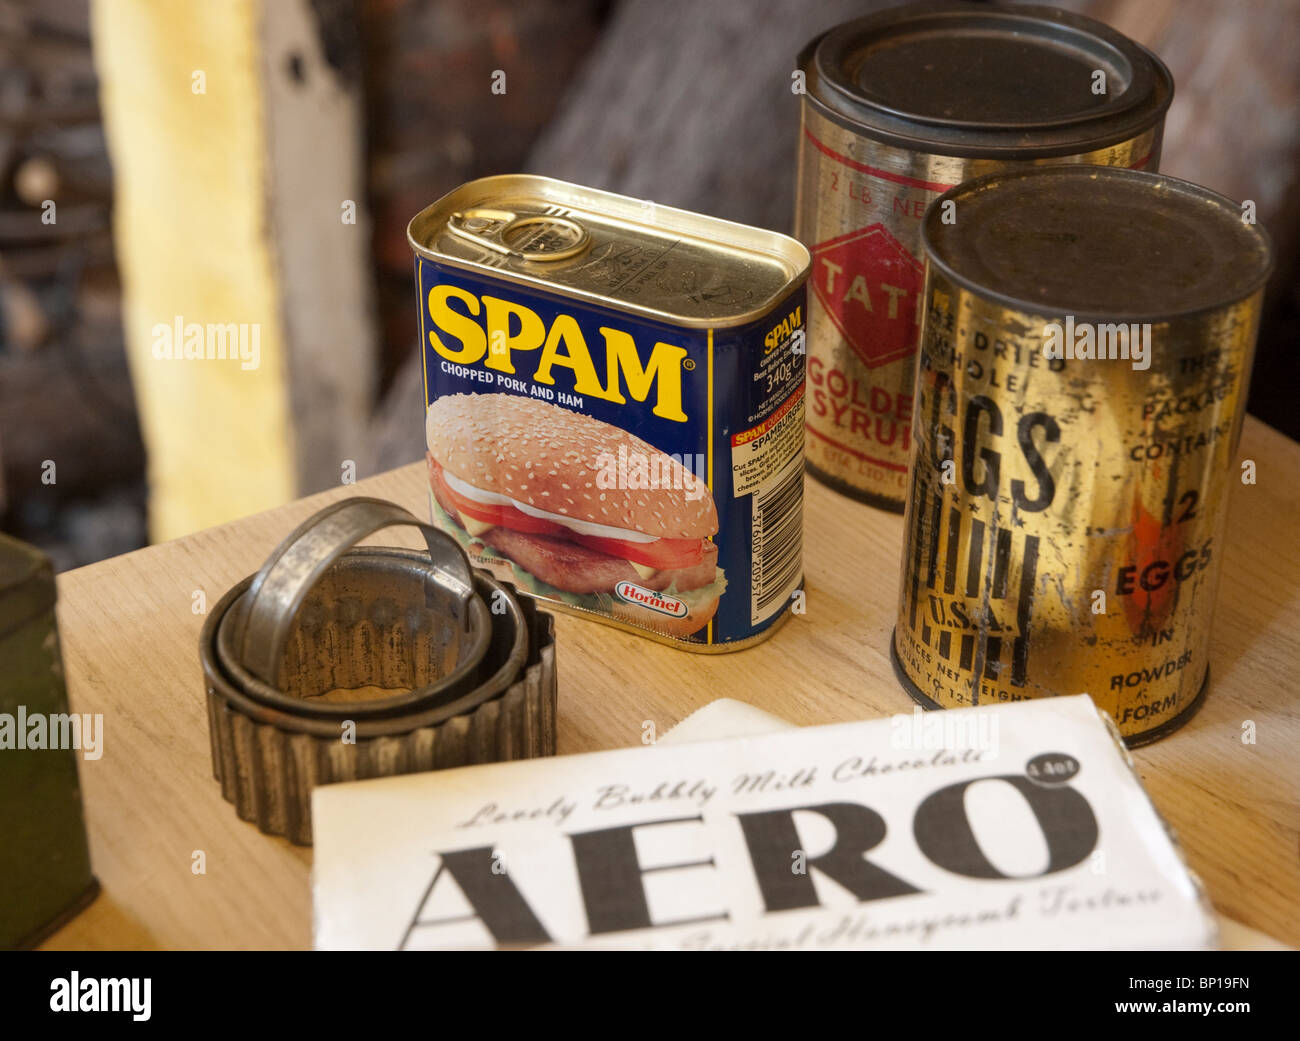 Wartime foods. - Stock Image